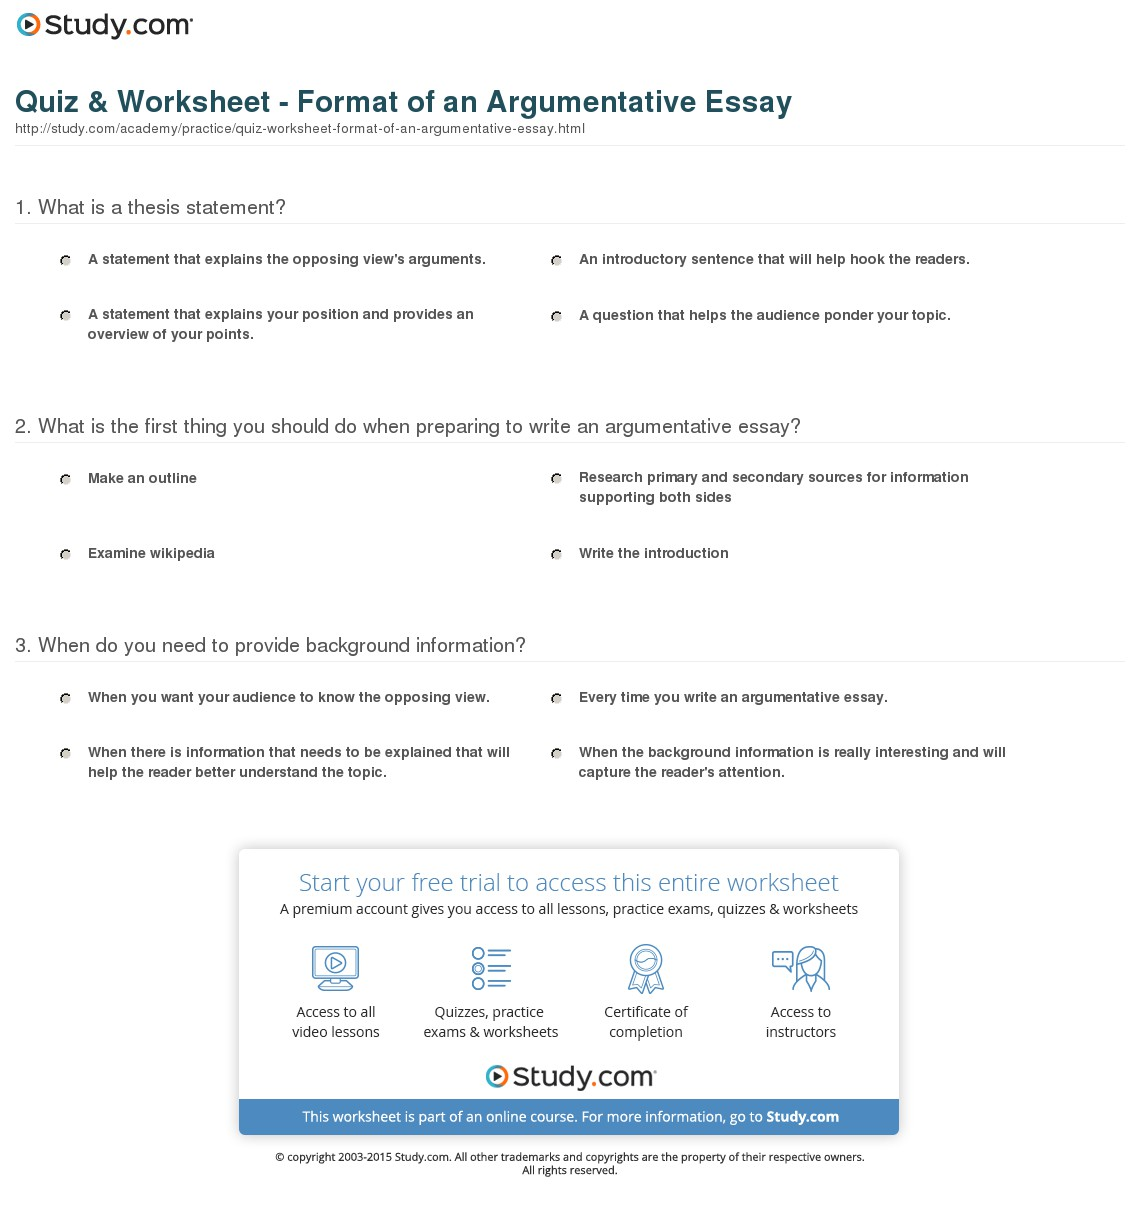 015 Argumentative Essay Format Quiz Worksheet Of An Best Template Outline Sample Pdf Full